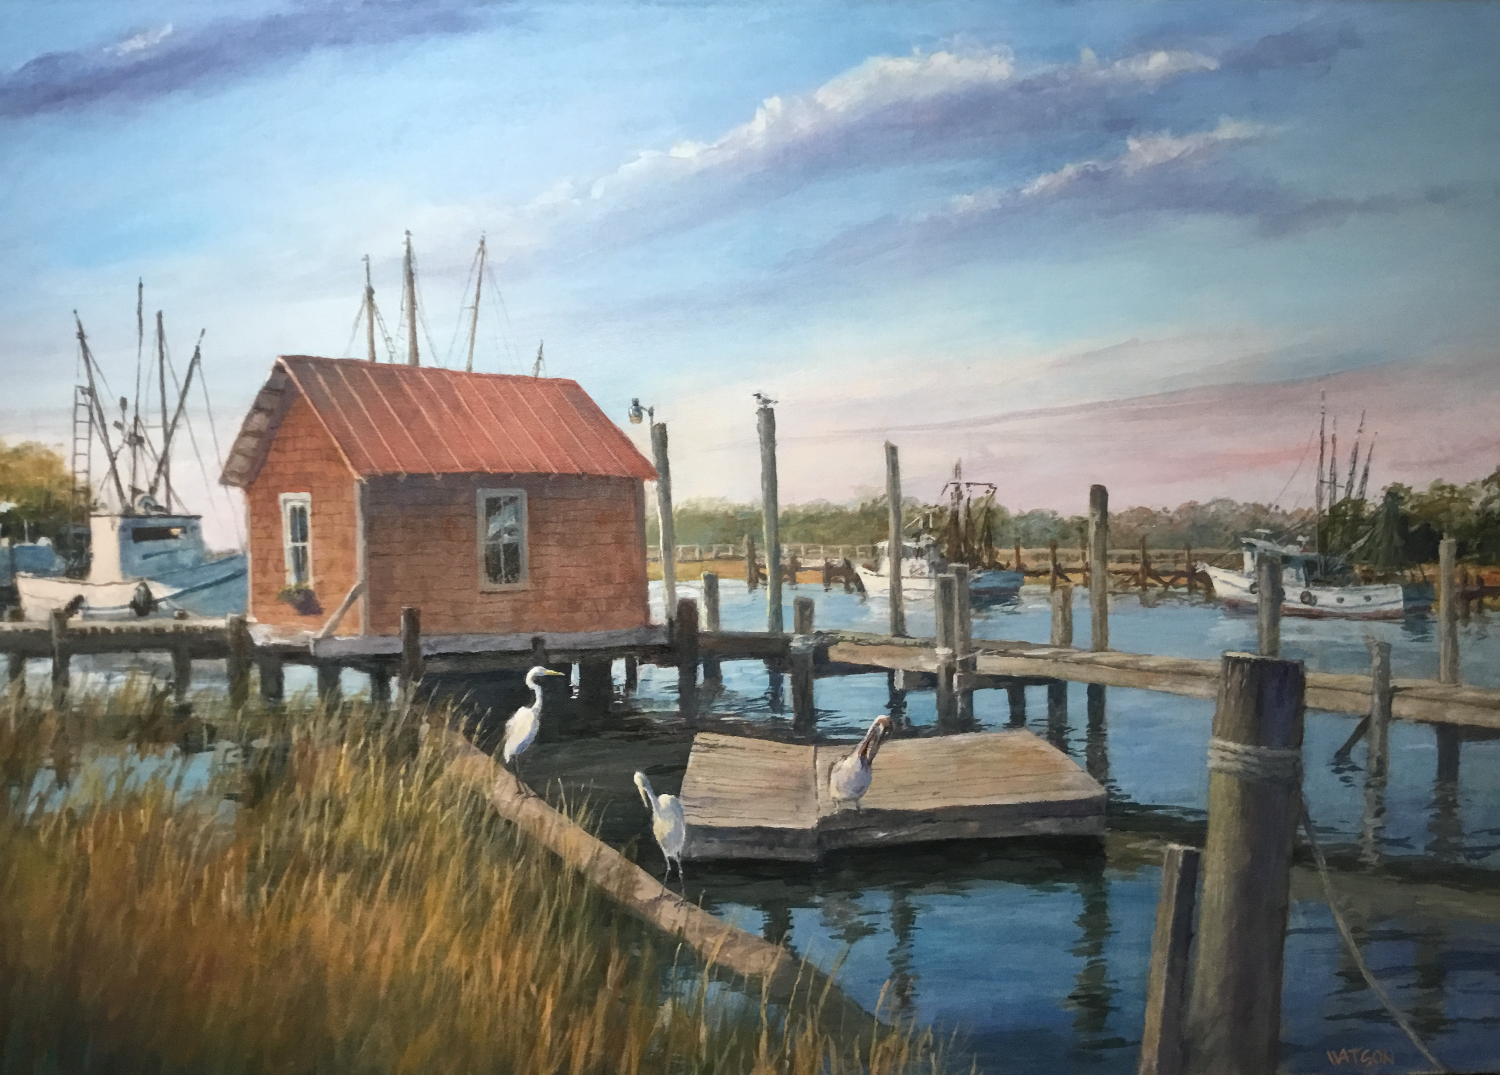 Shem Creek Shack